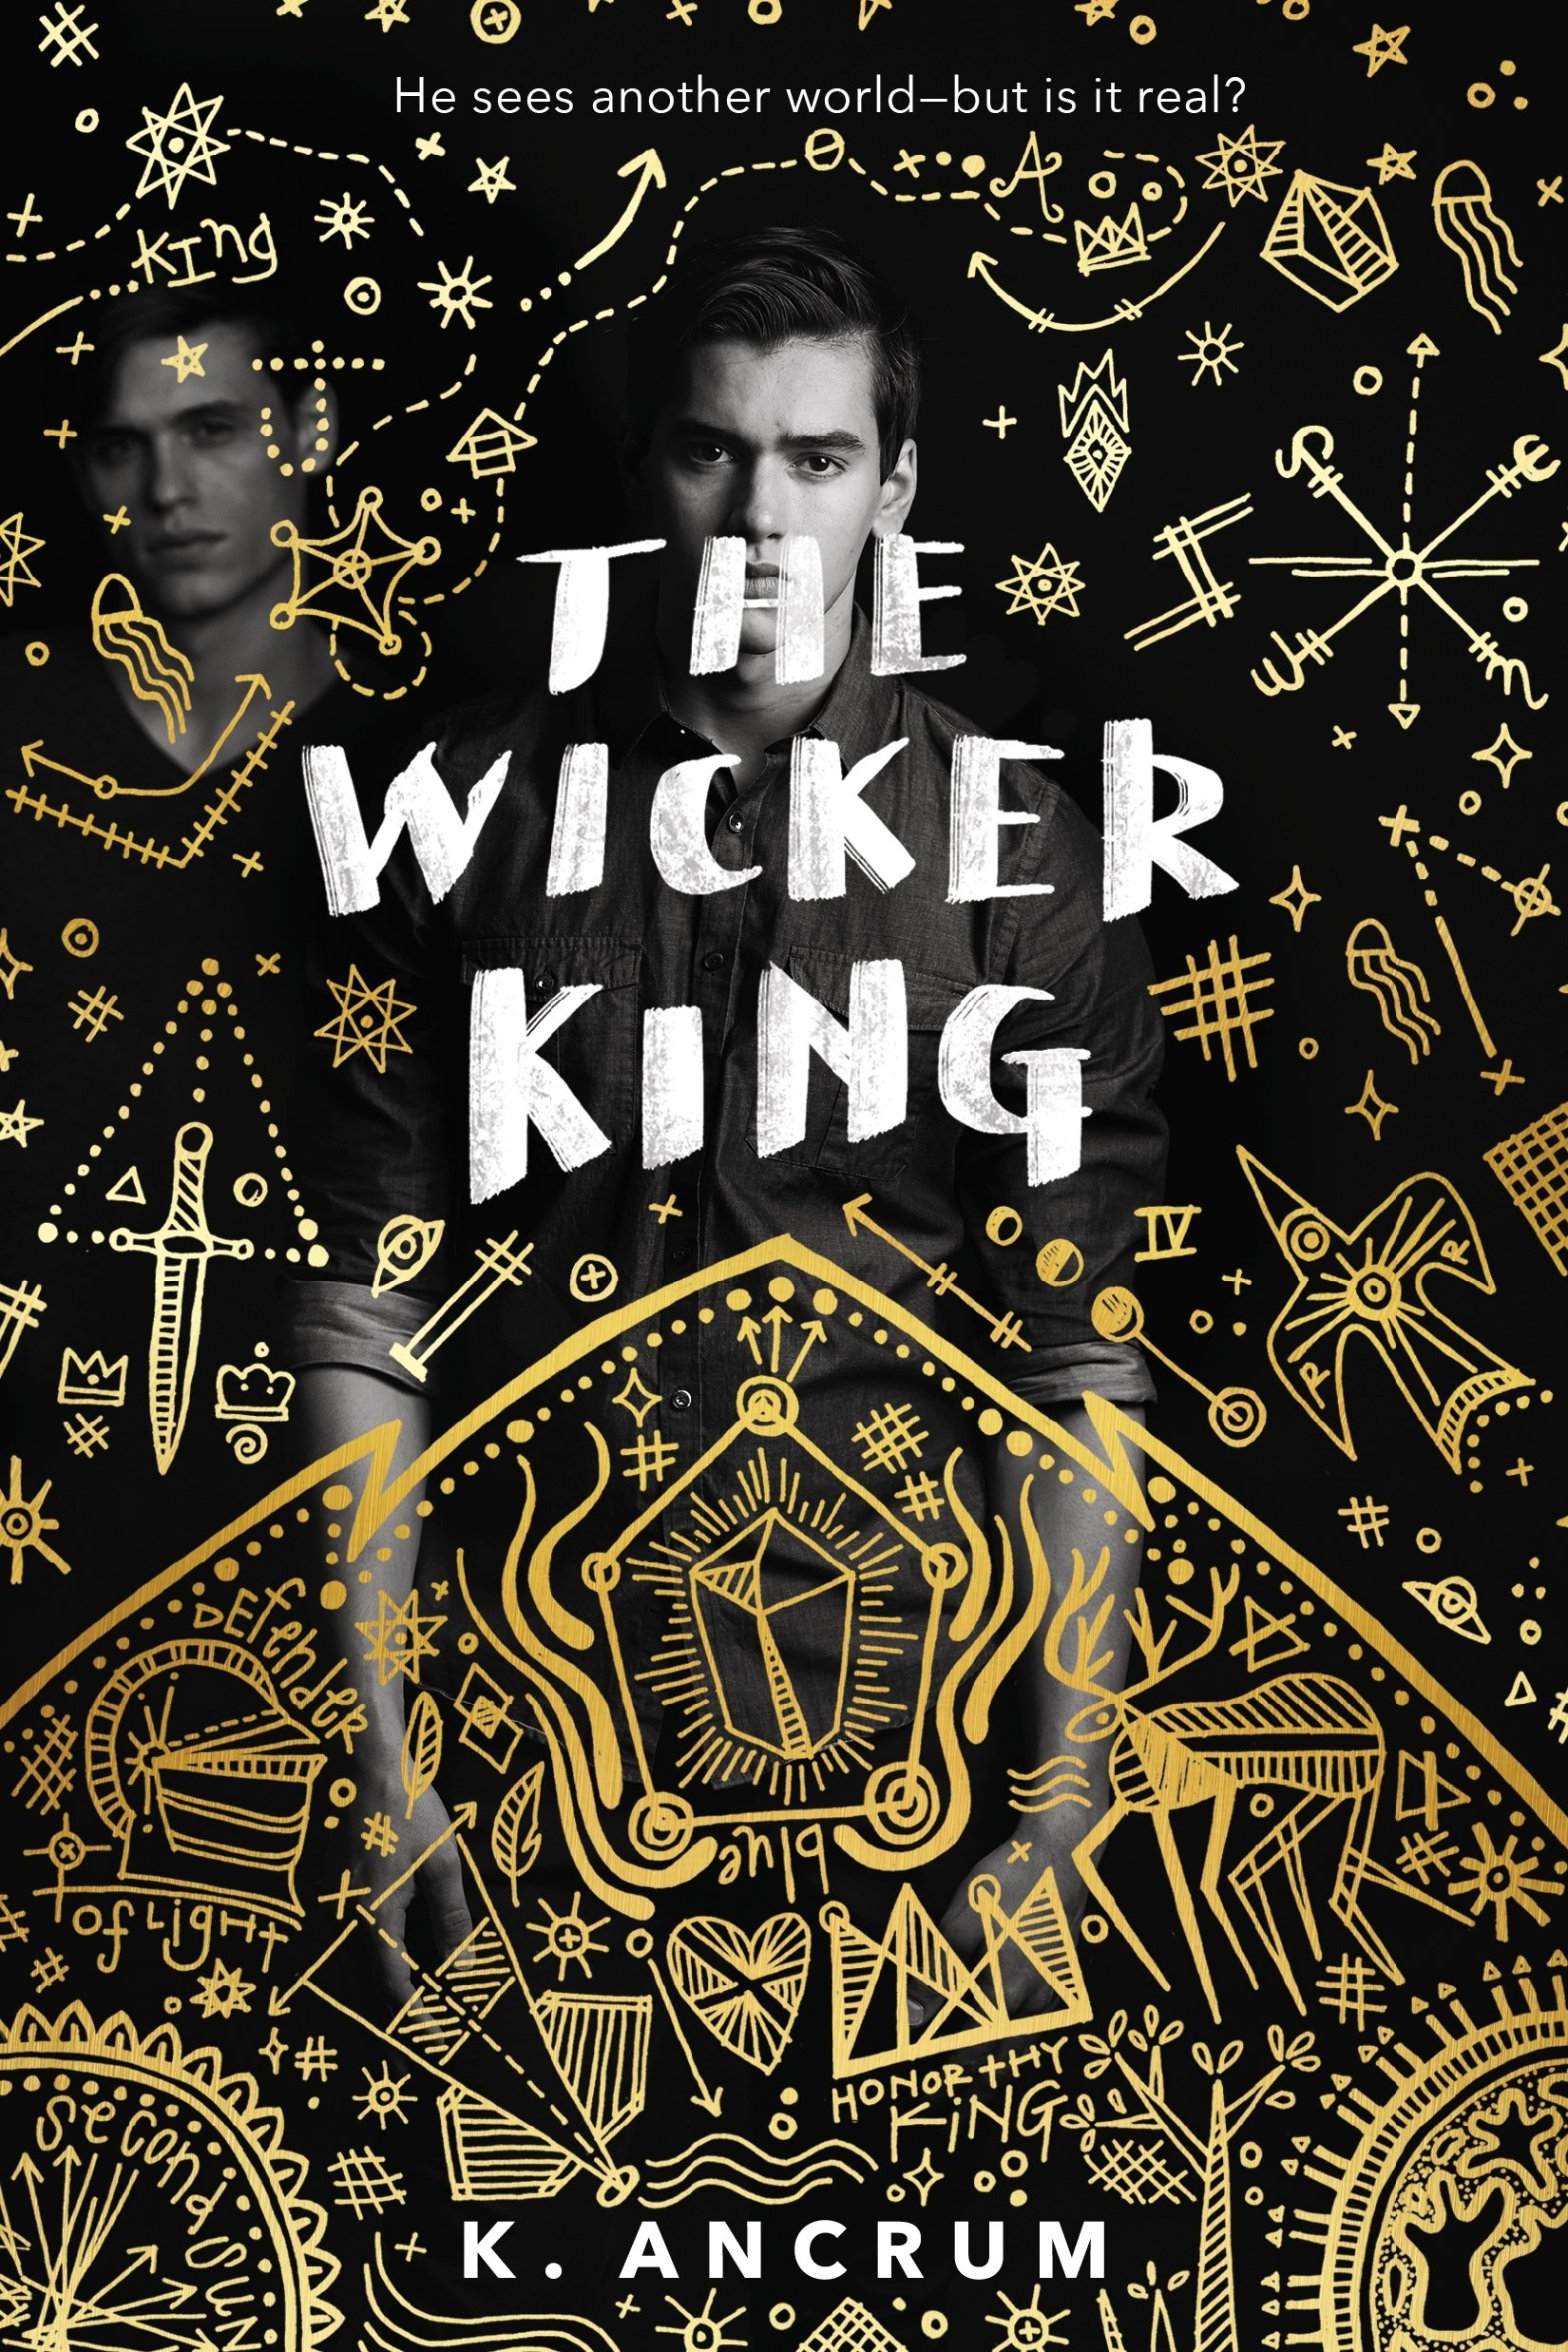 Amazon.com: The Wicker King (9781250101549): Ancrum, K.: Books